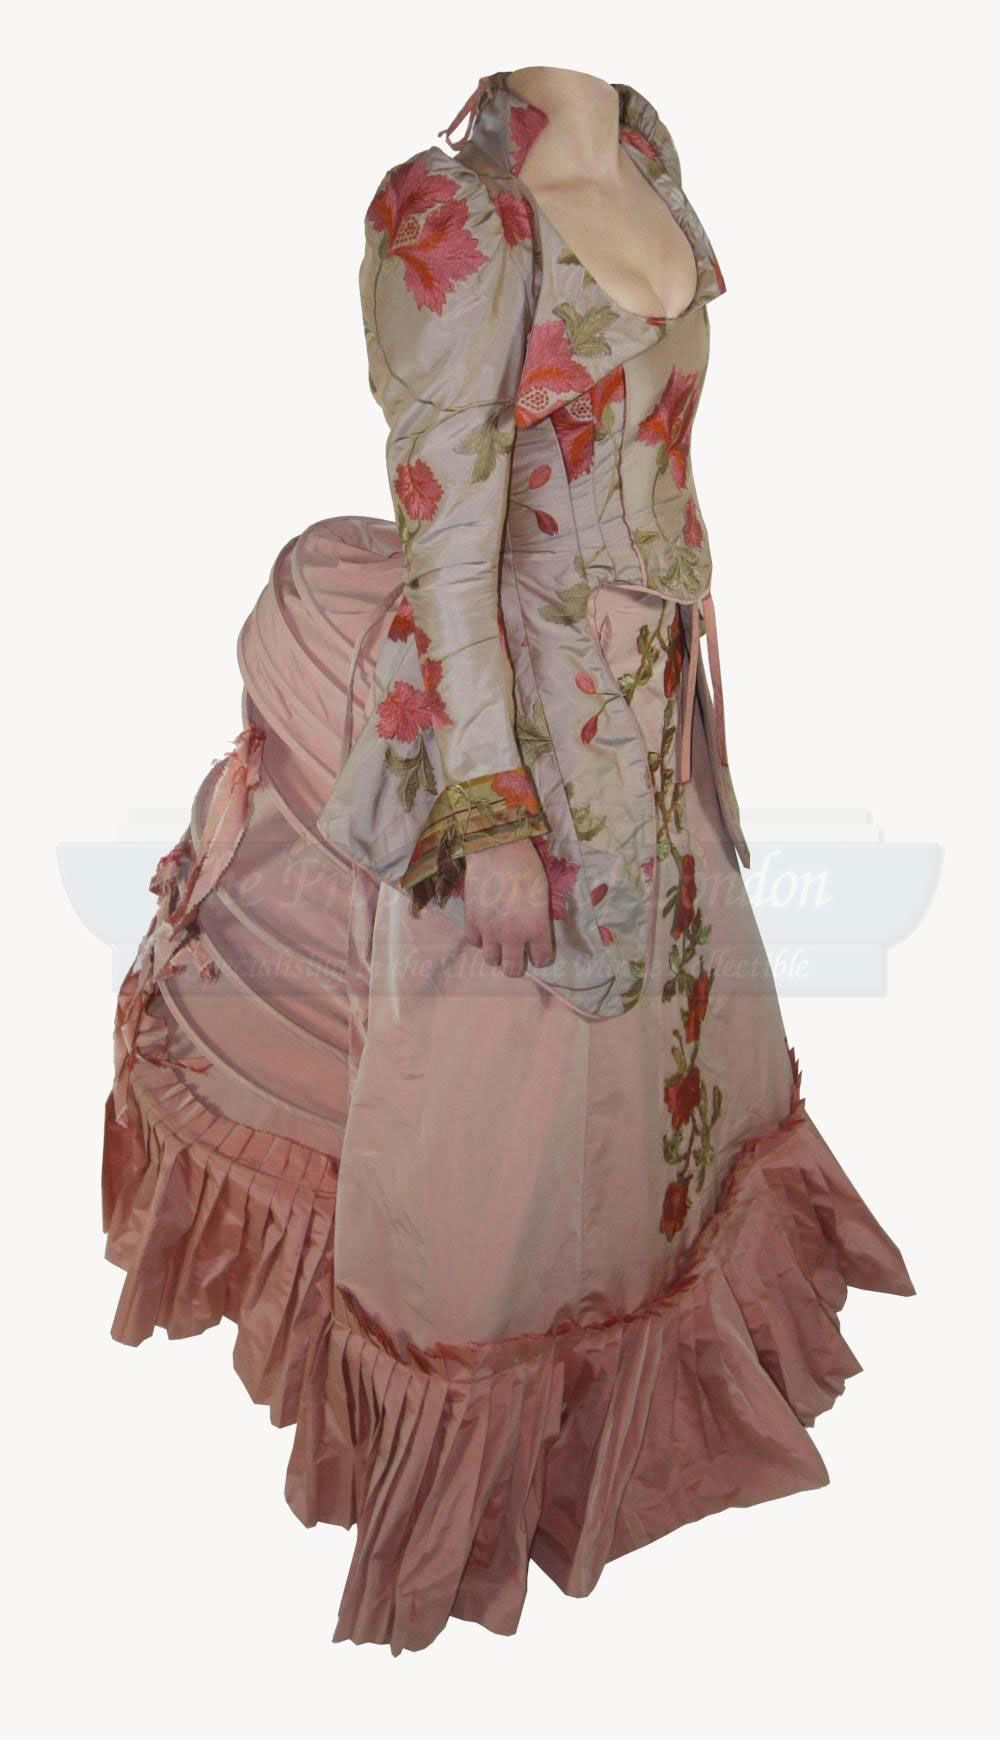 roses gown - secret of moonacre http://costumersguide.com/moonacre/propstore_pink1.jpg